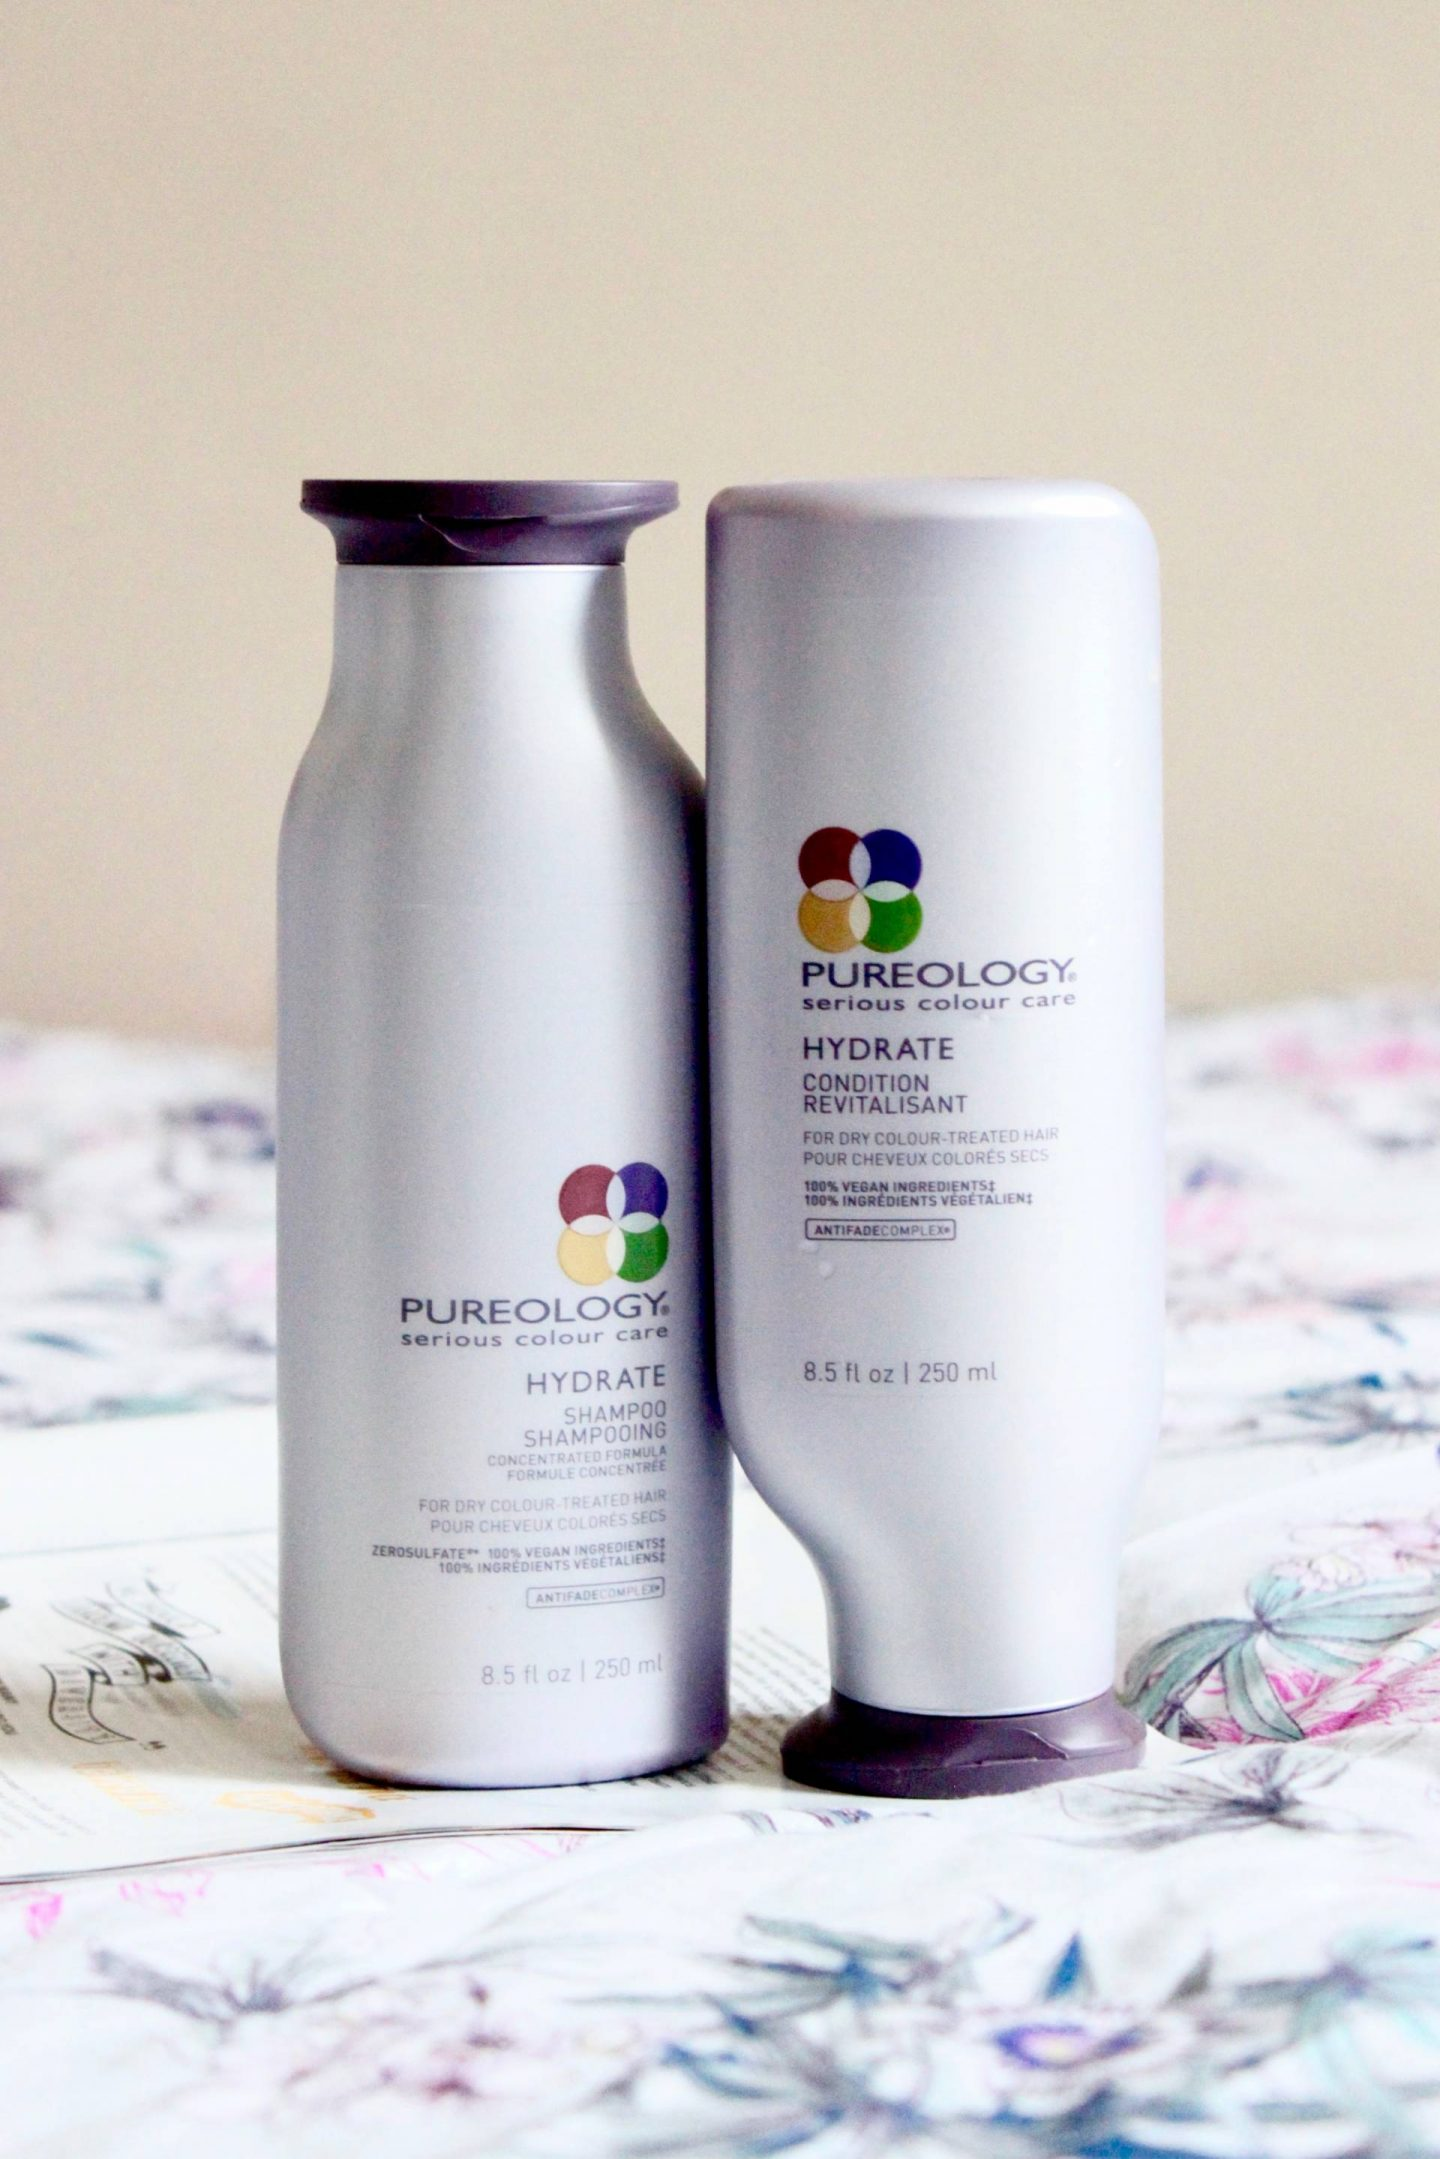 Pureology hydrate shampoo conditioner